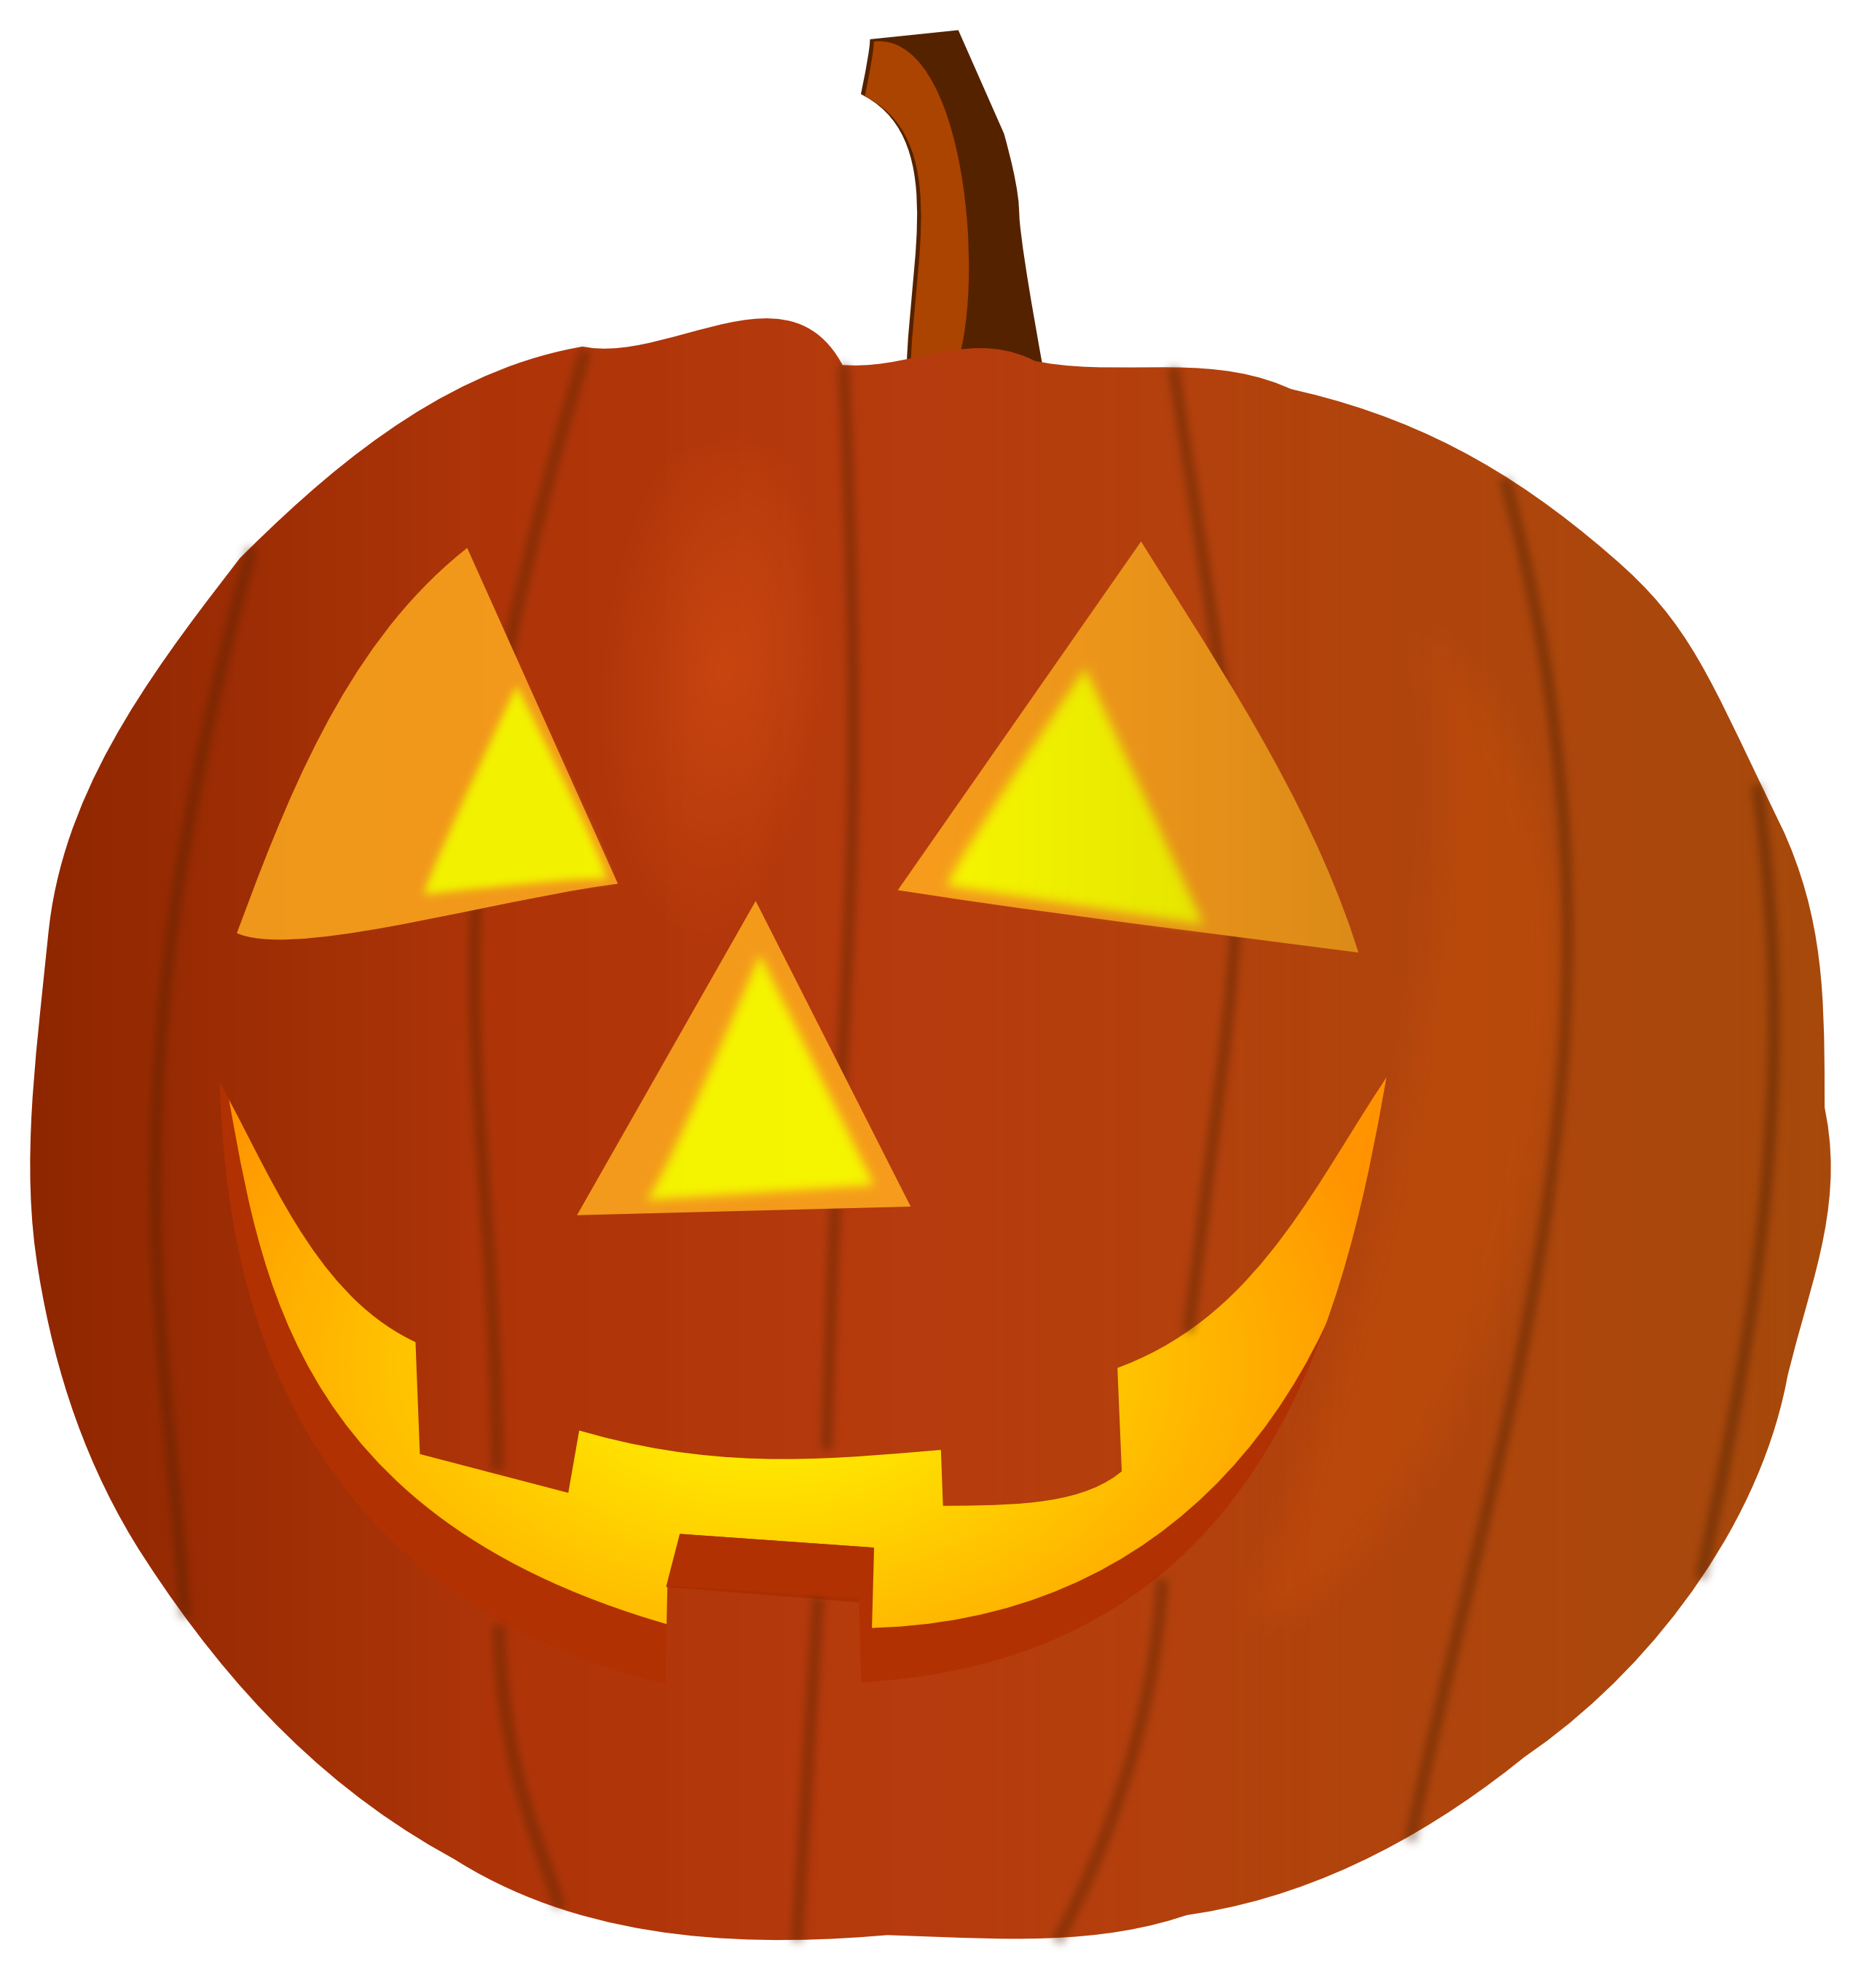 halloween image clipart - photo #18